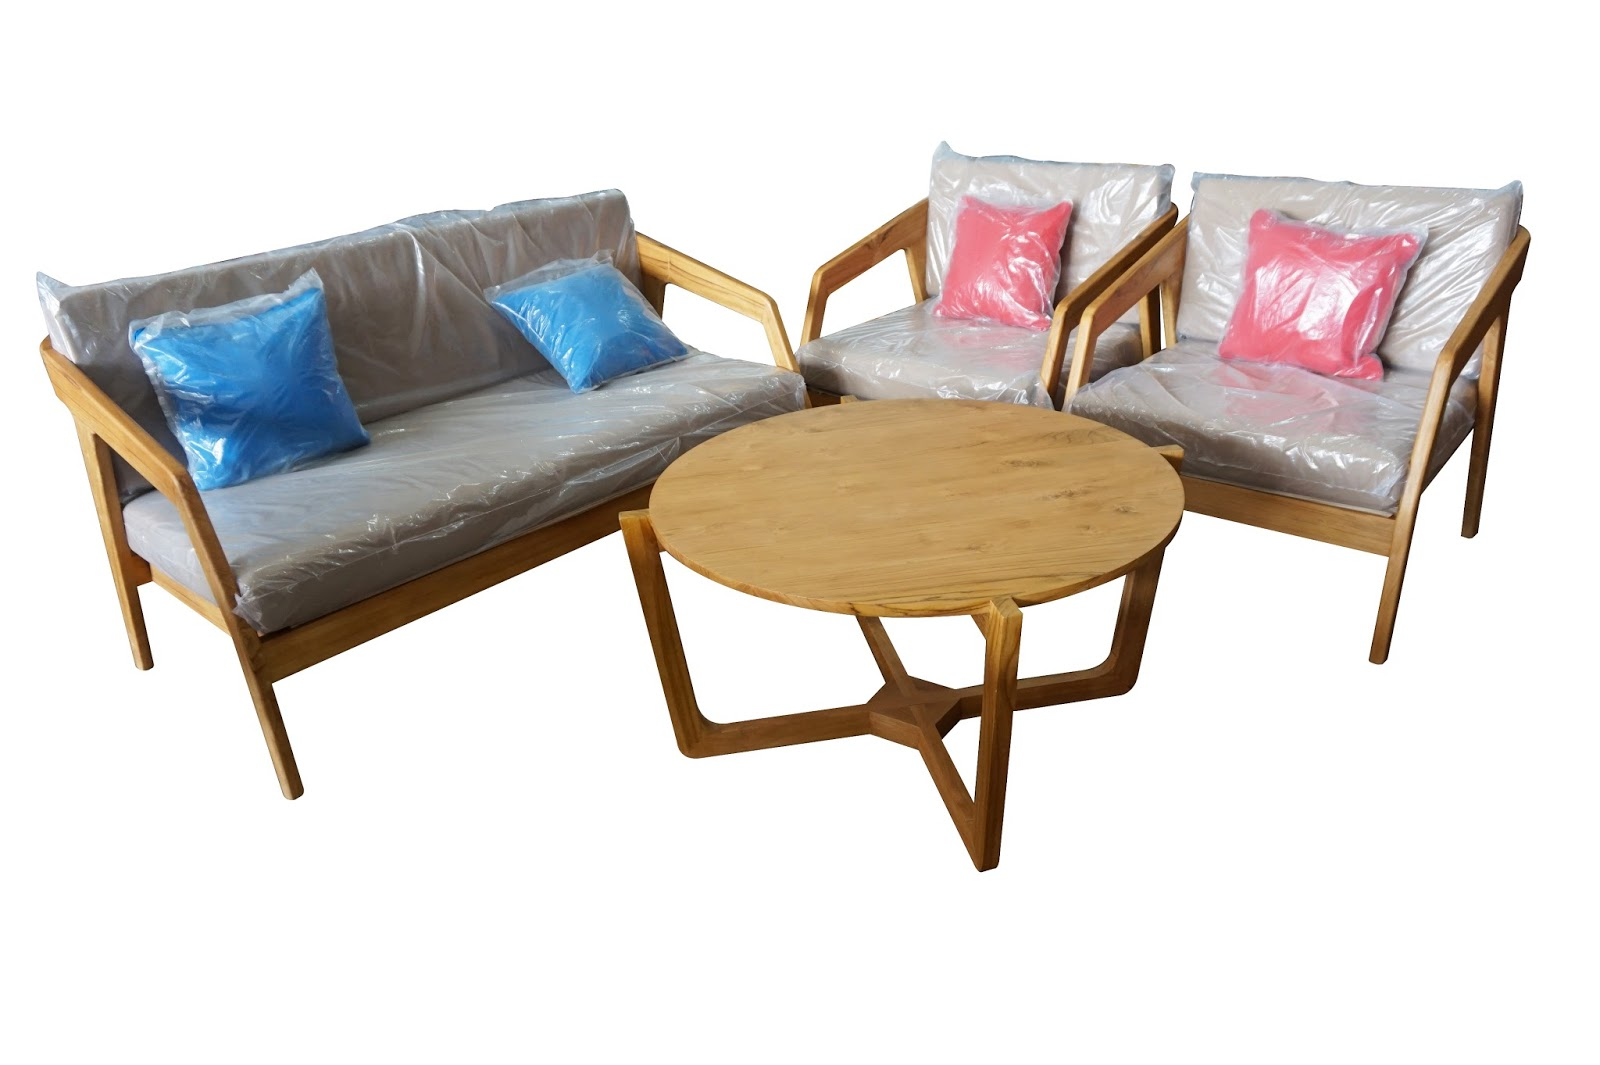 teak wood home furniture and outdoor wicker garden furniture